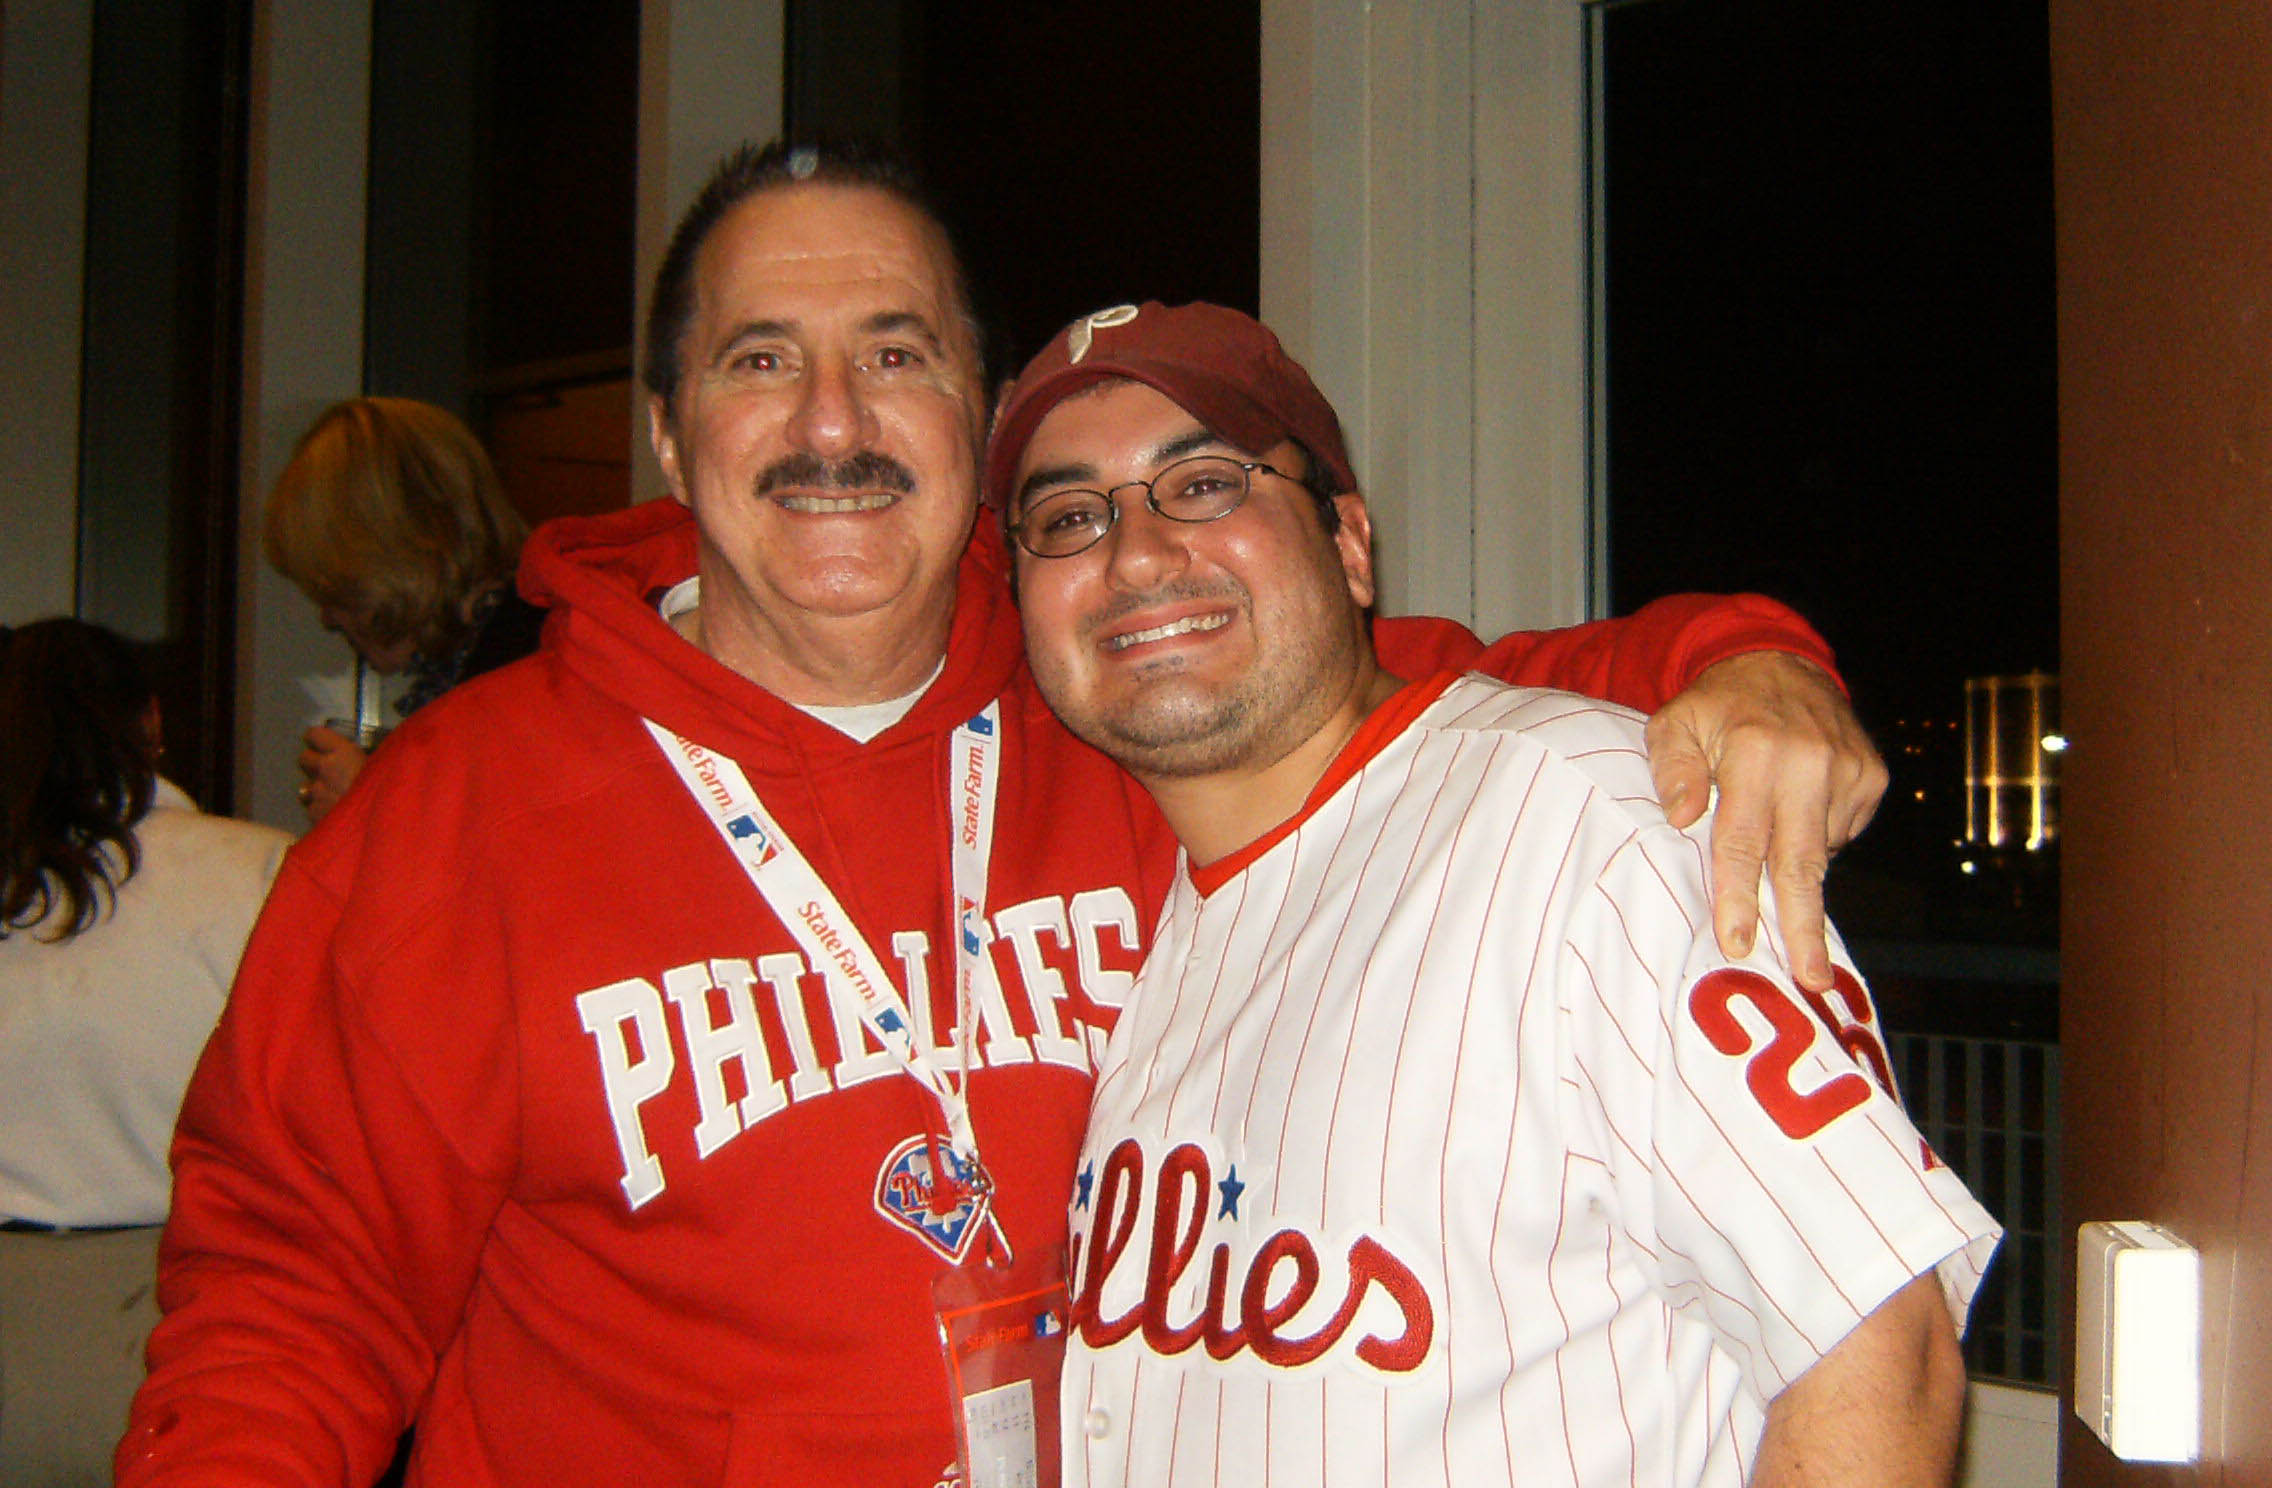 Me and Dad after the 2008 World Series